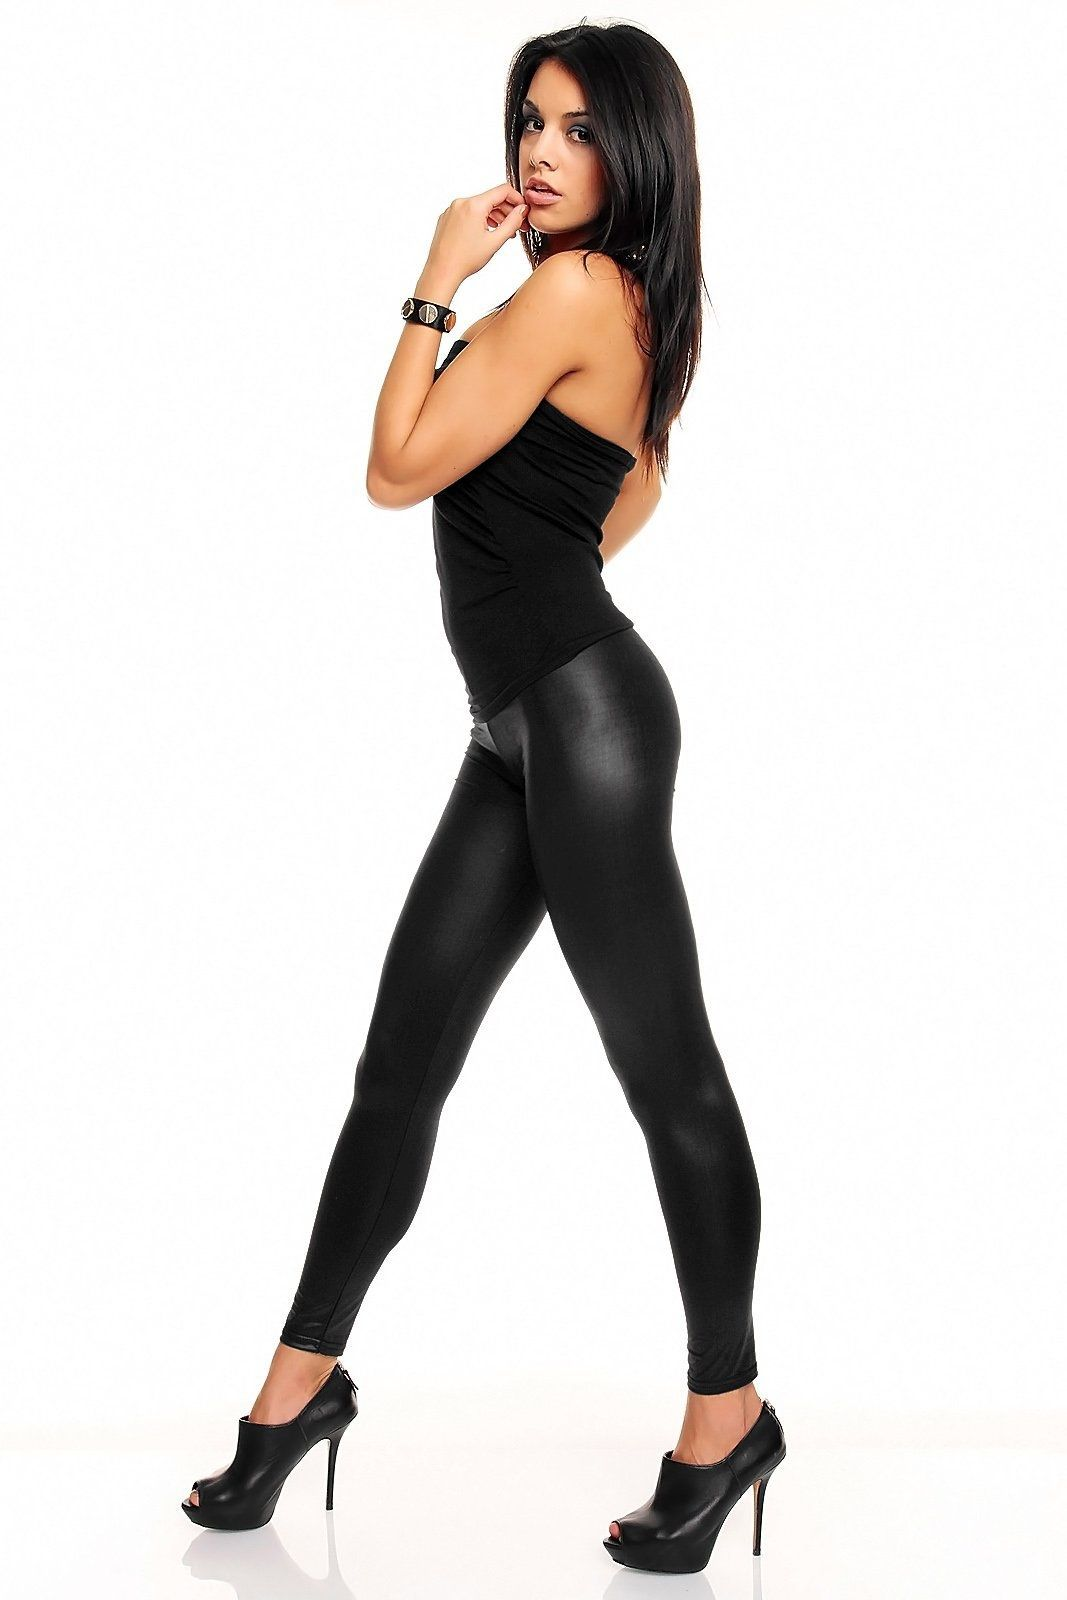 Find great deals on eBay for shiny black leggings. Shop with confidence.